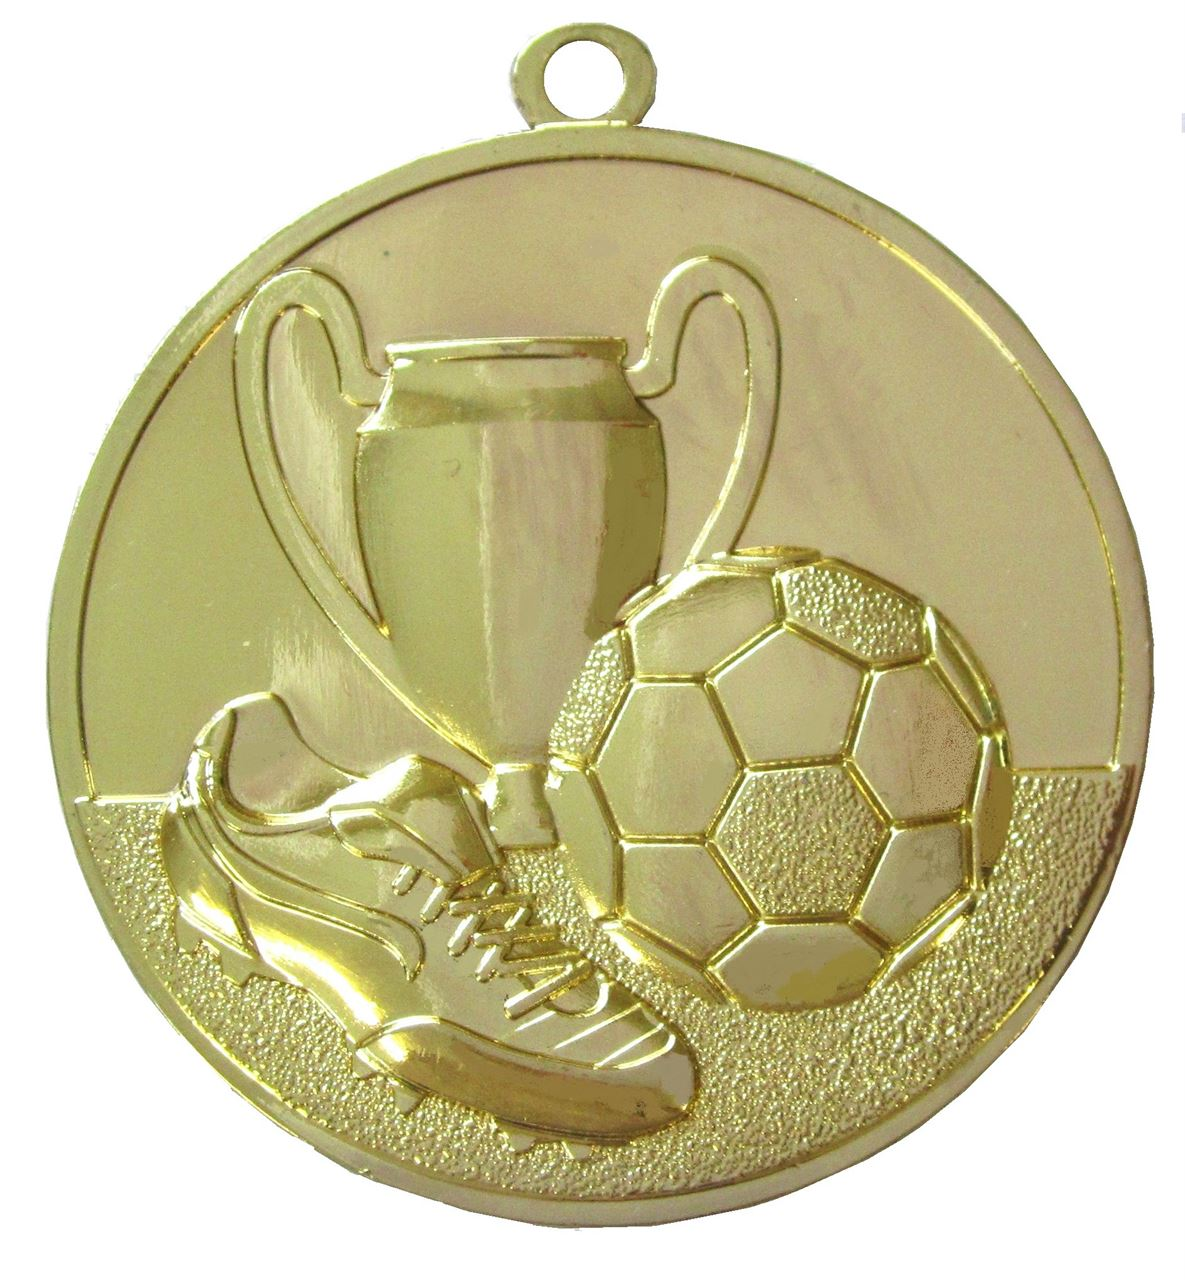 Gold Super Economy Football Medal (size: 50mm) - ME47